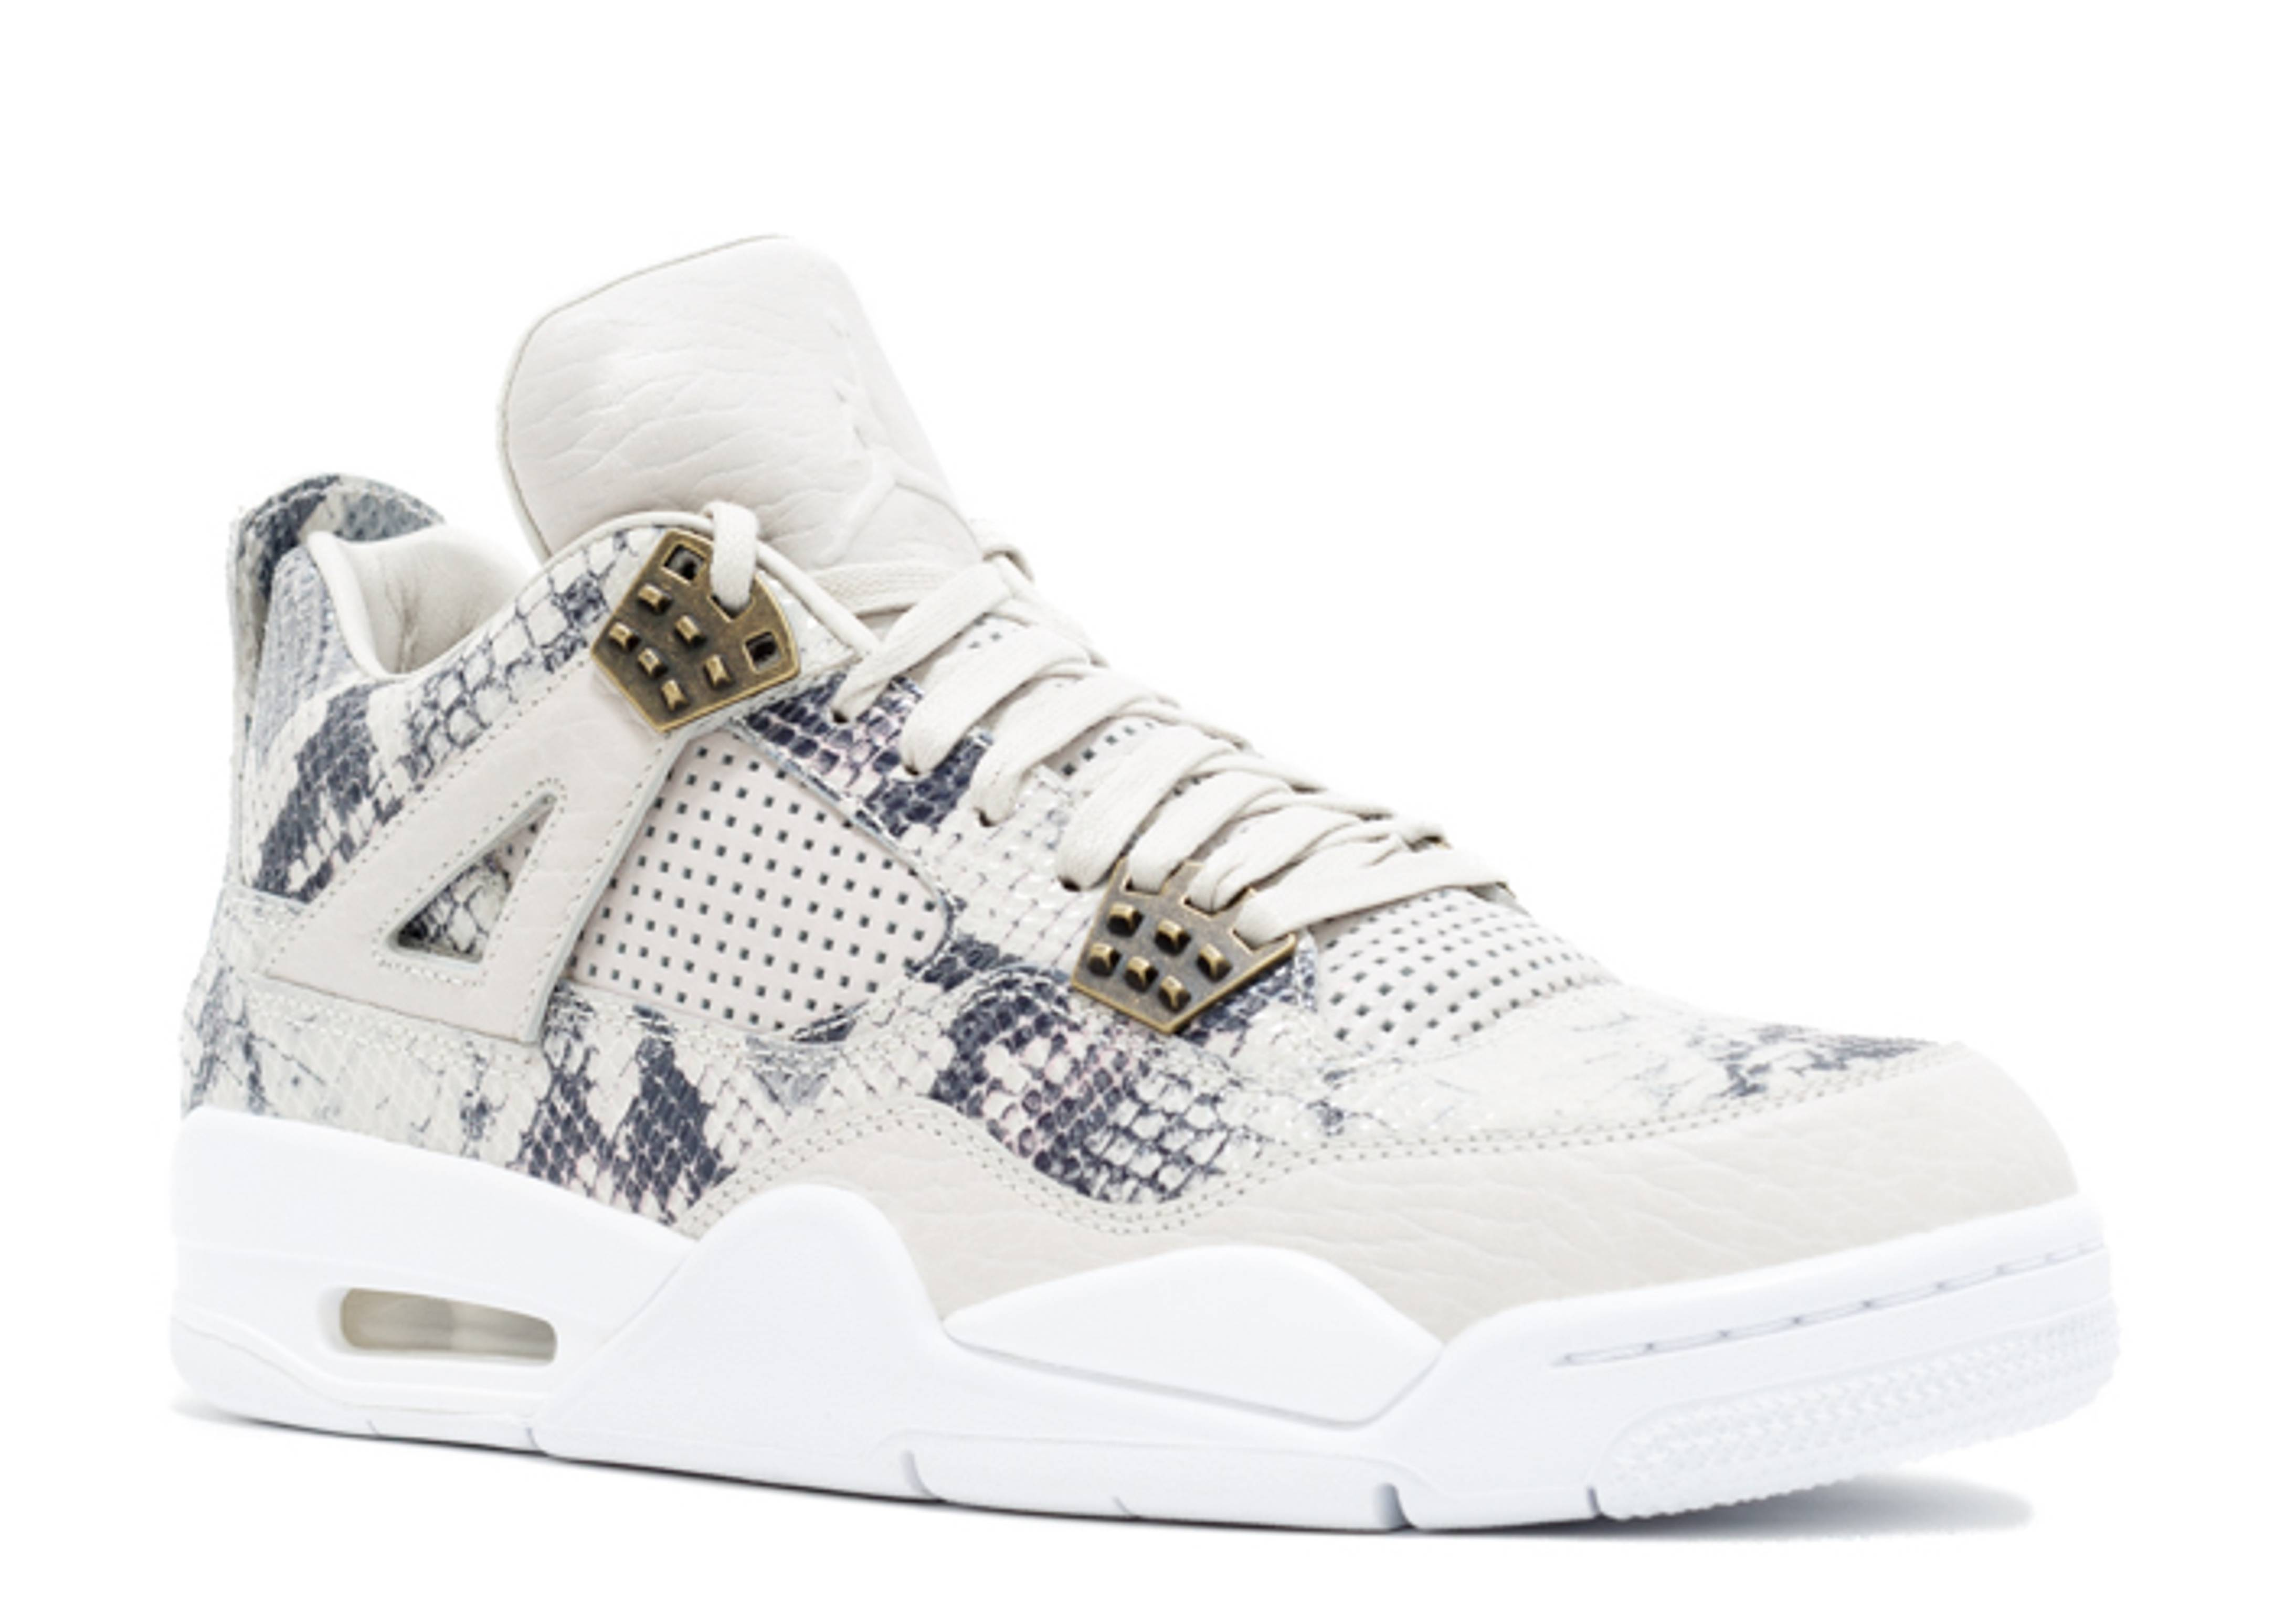 "White Retro: Air Jordan 4 Retro Premium ""pinnacle ""snakeskin"""""